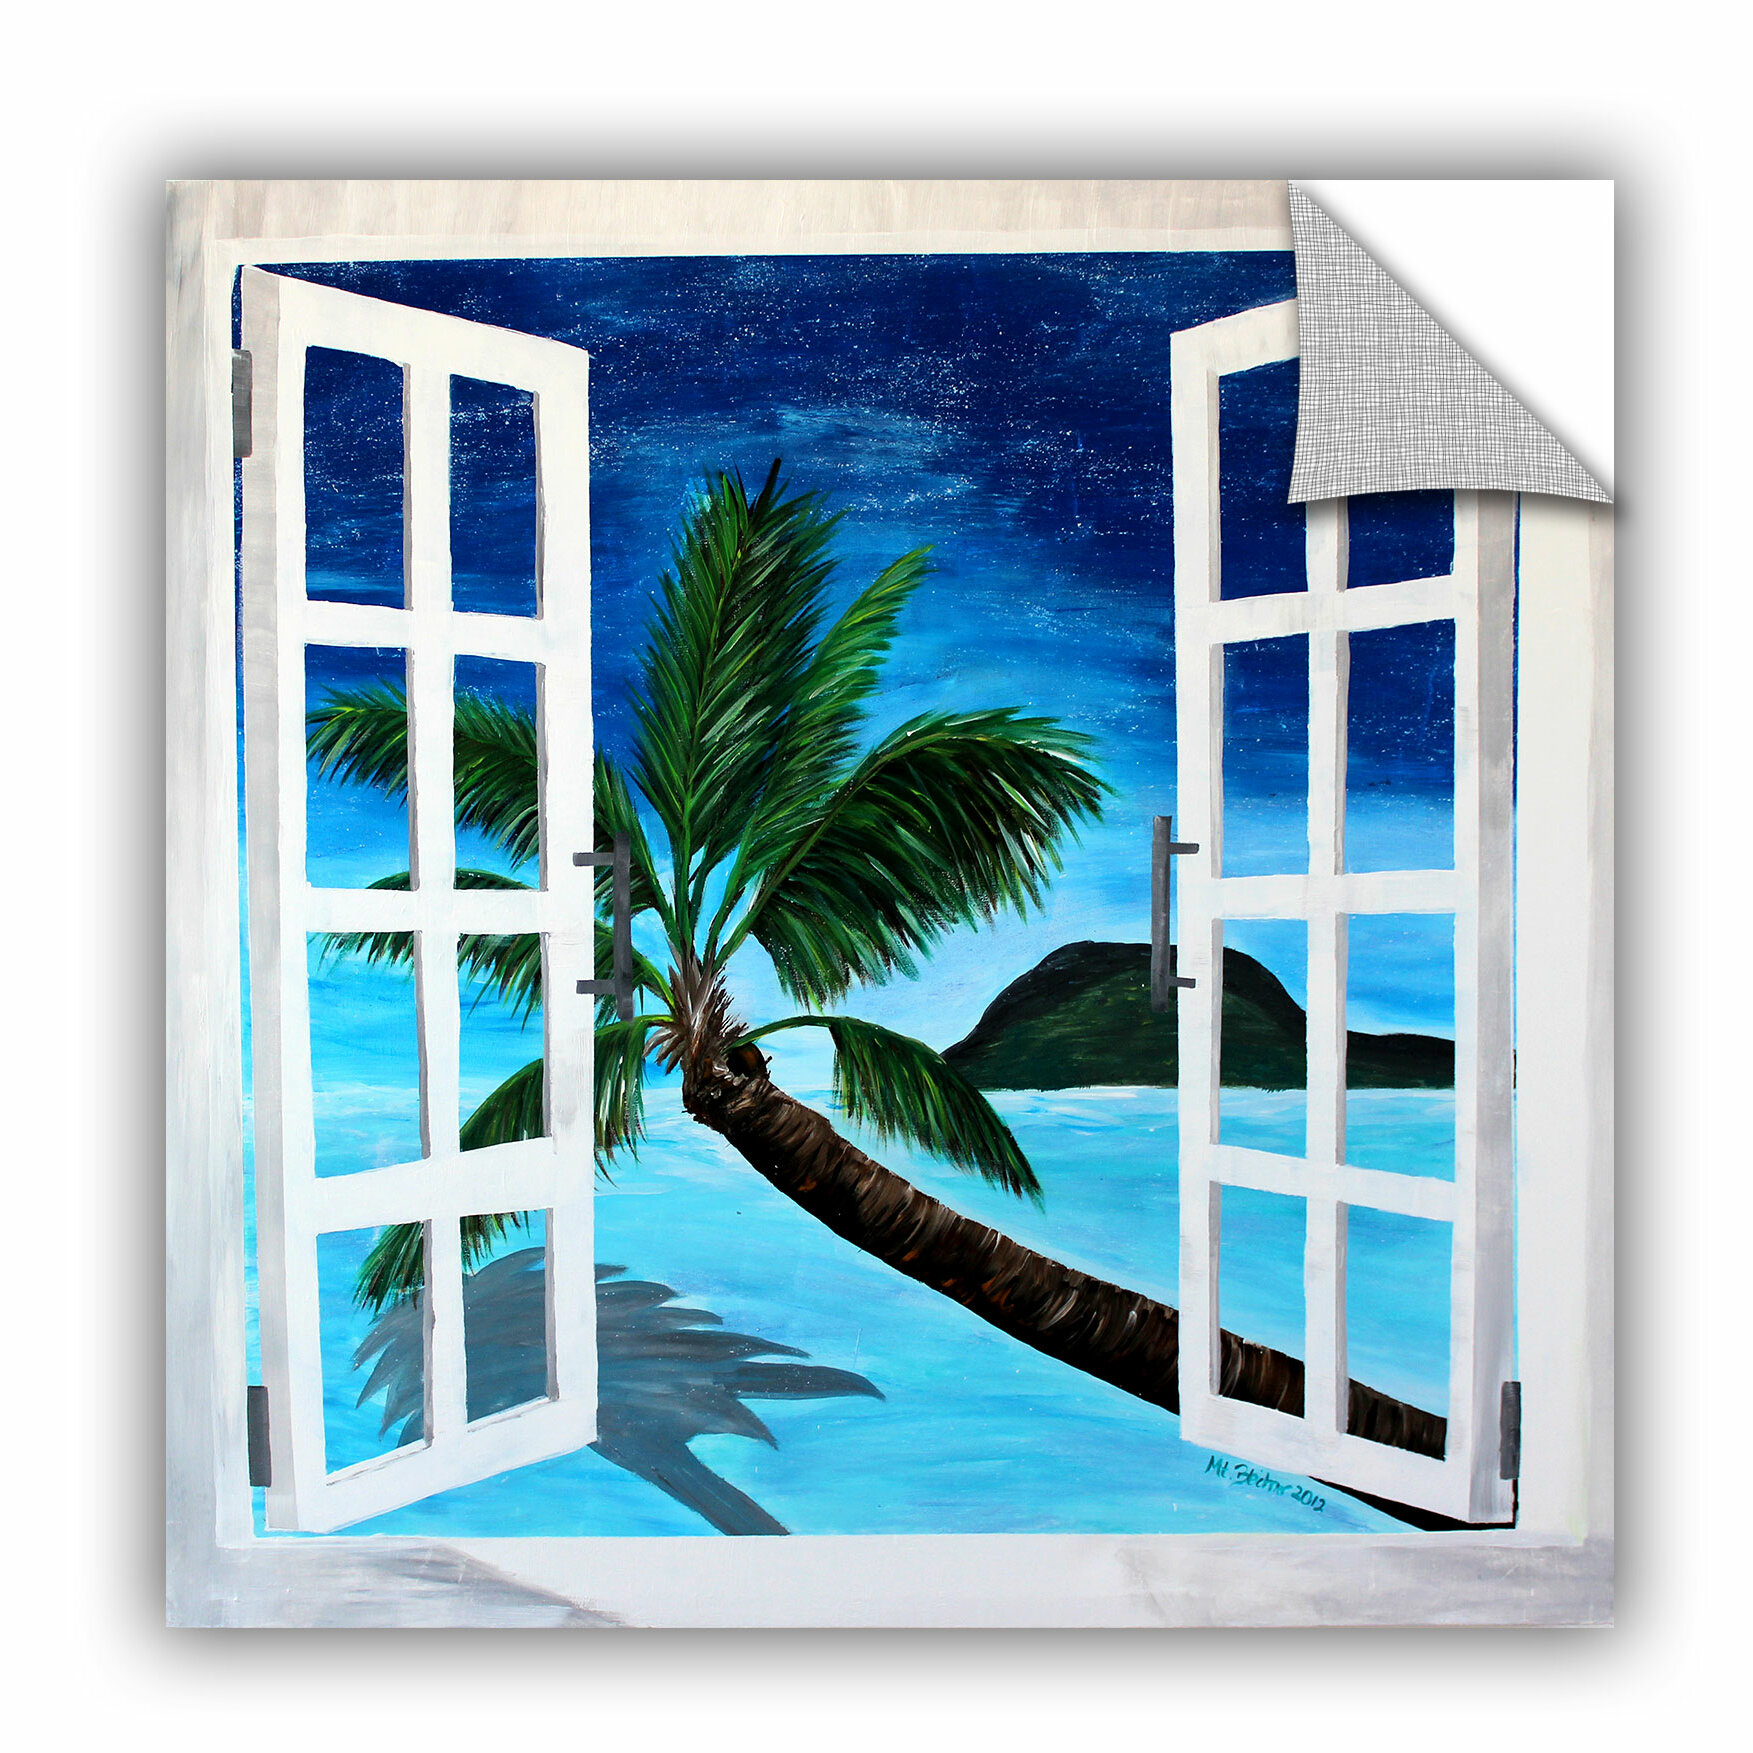 Artwall Artapeelz Palm View Window By Marcus Martina Bleichner Painting Print On Canvas Wayfair